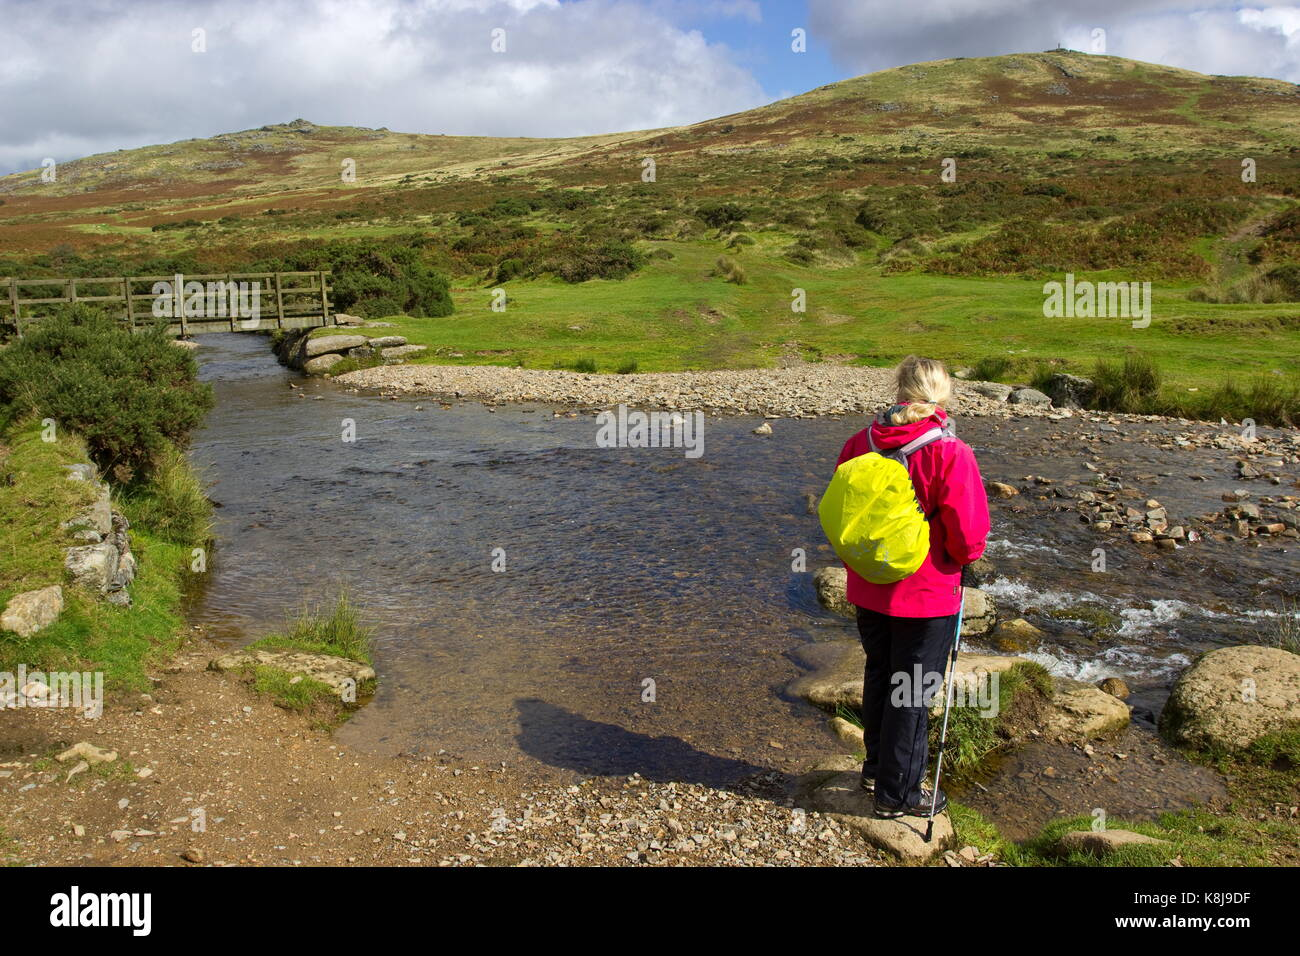 Female in red on the River Lyd with wooden bridge and stepping stones Dartmoor National Park Lydford Devon England - Stock Image